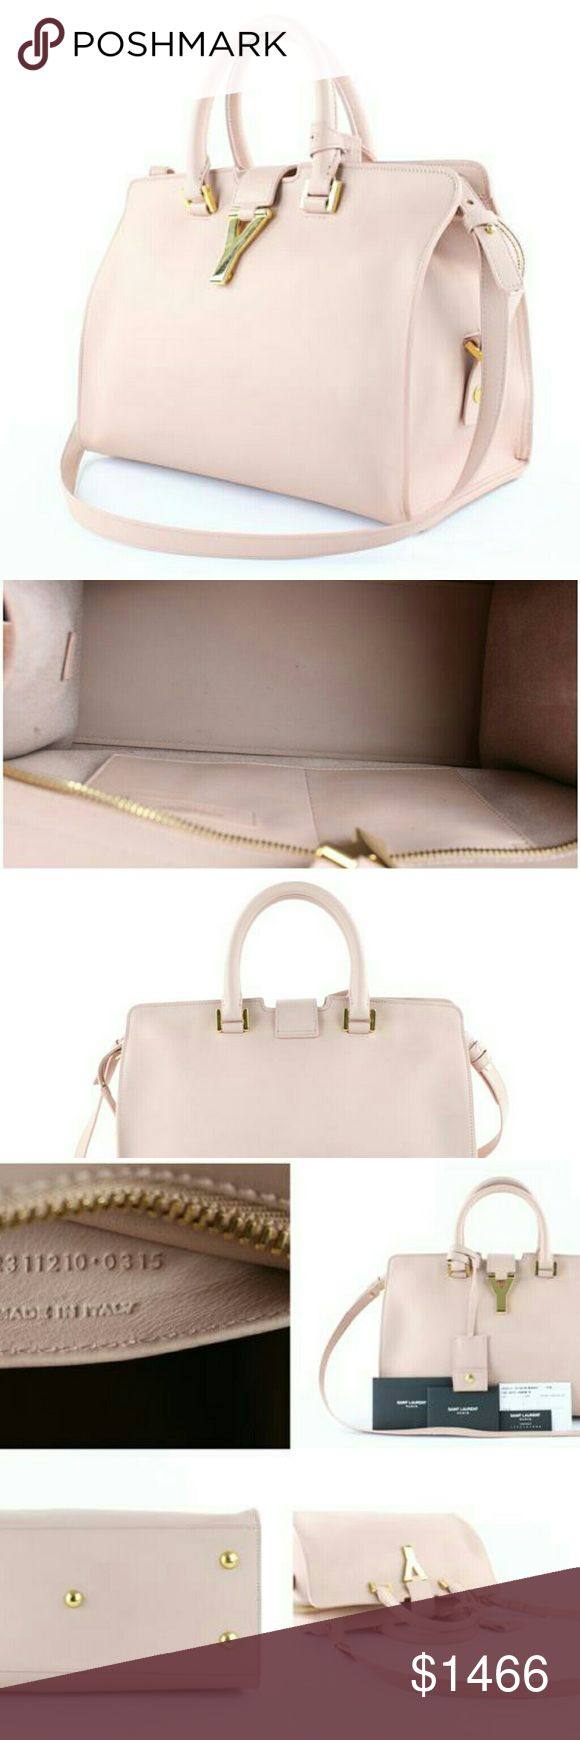 "Saint Laurent Ligne Cabas Chyc Y 2way Satchel This item will ship out immediately.  Previously owned, unless otherwise stated.  Includes: Envelope, booklet, tag, info card, care tag, and clochette with key ring  Signs of Wear: Light rubs on exterior. Light tiny marks at interior and hardware.  This item does not come with any extra accessories.  Please review photos for more details.  Color appearance may vary depending on your monitor settings.  Measurements:11.75""L x 8""H x 6.25""W  Gently…"